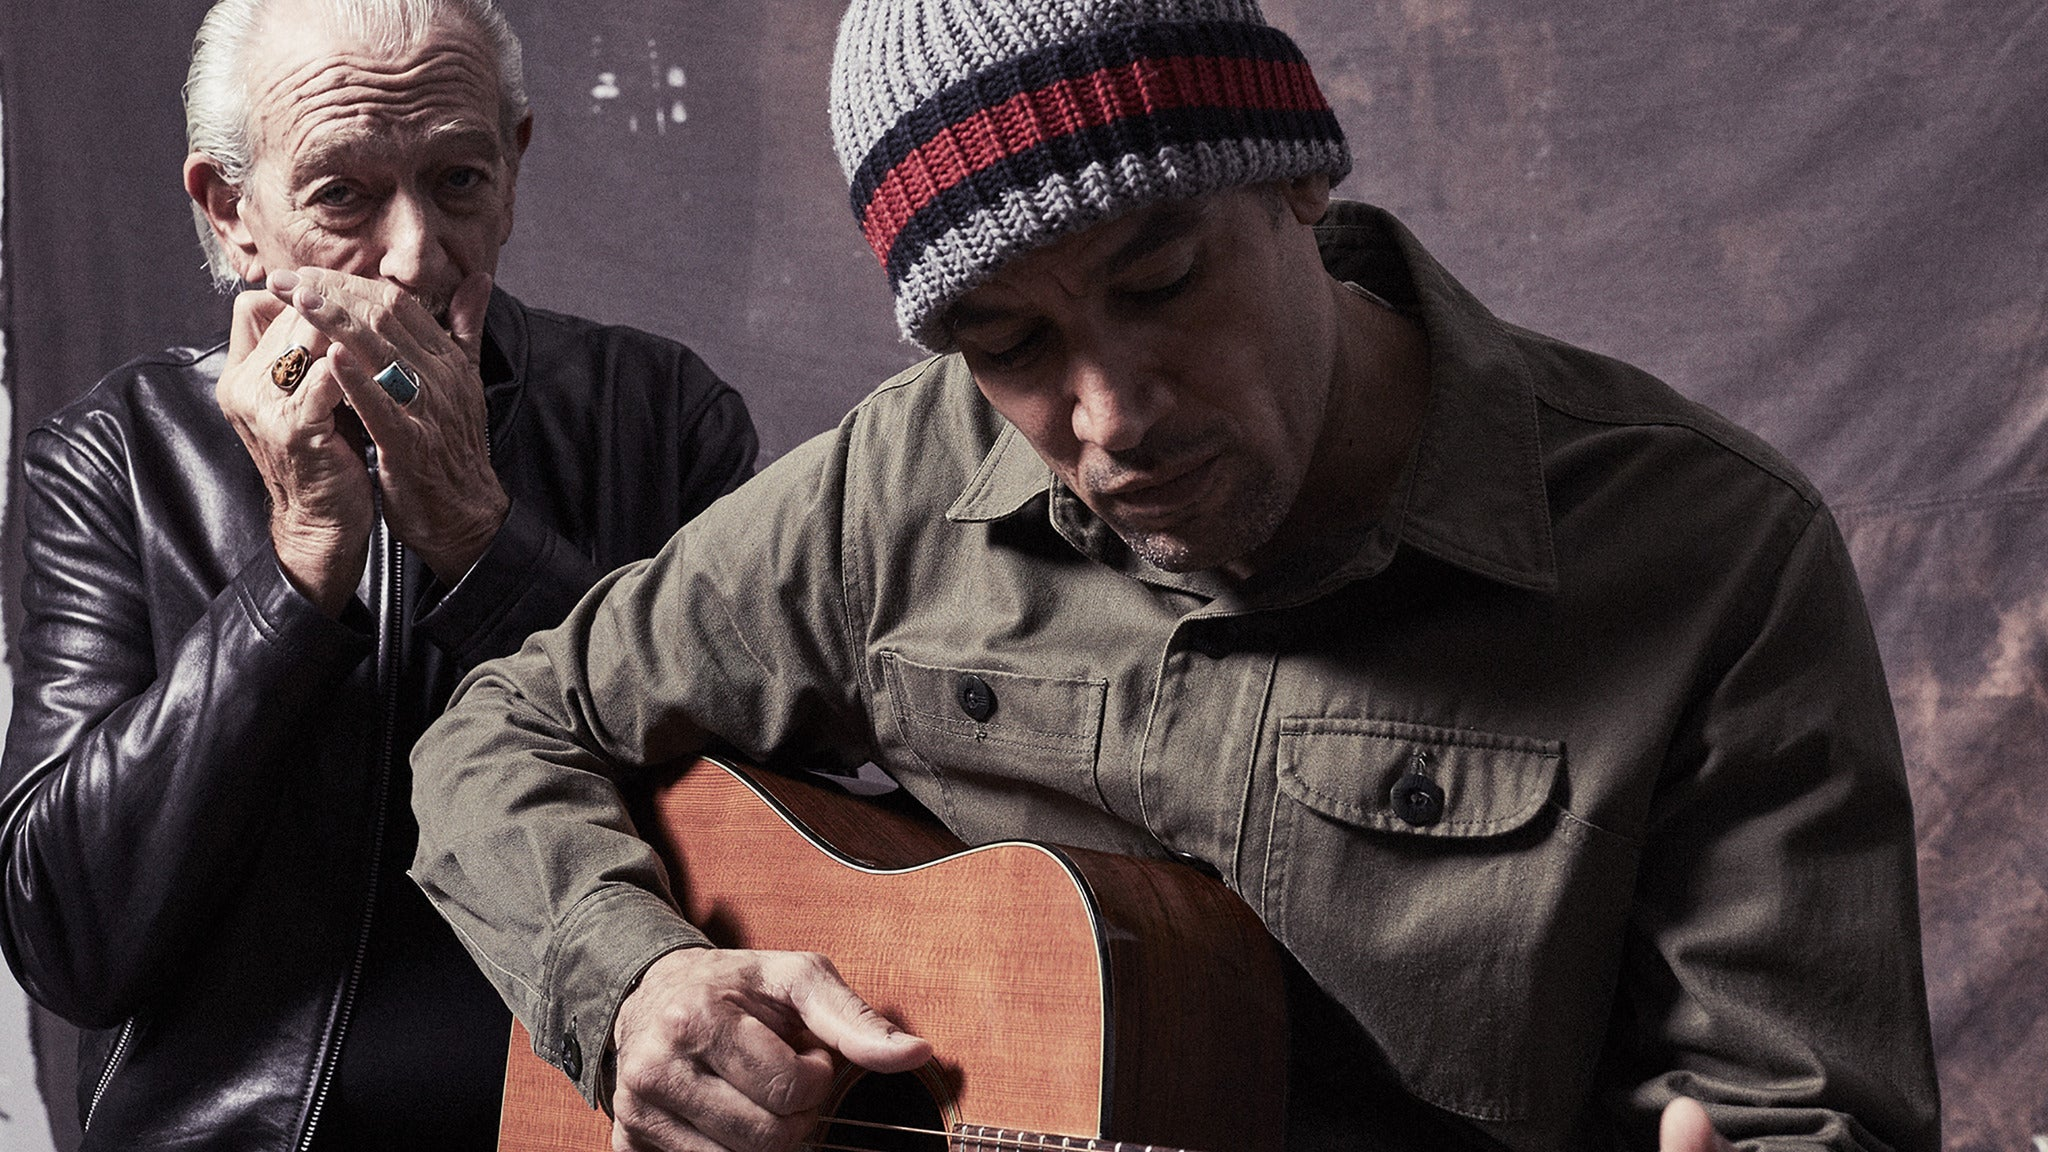 Ben Harper w/ Charlie Musselwhite at Belly Up Tavern